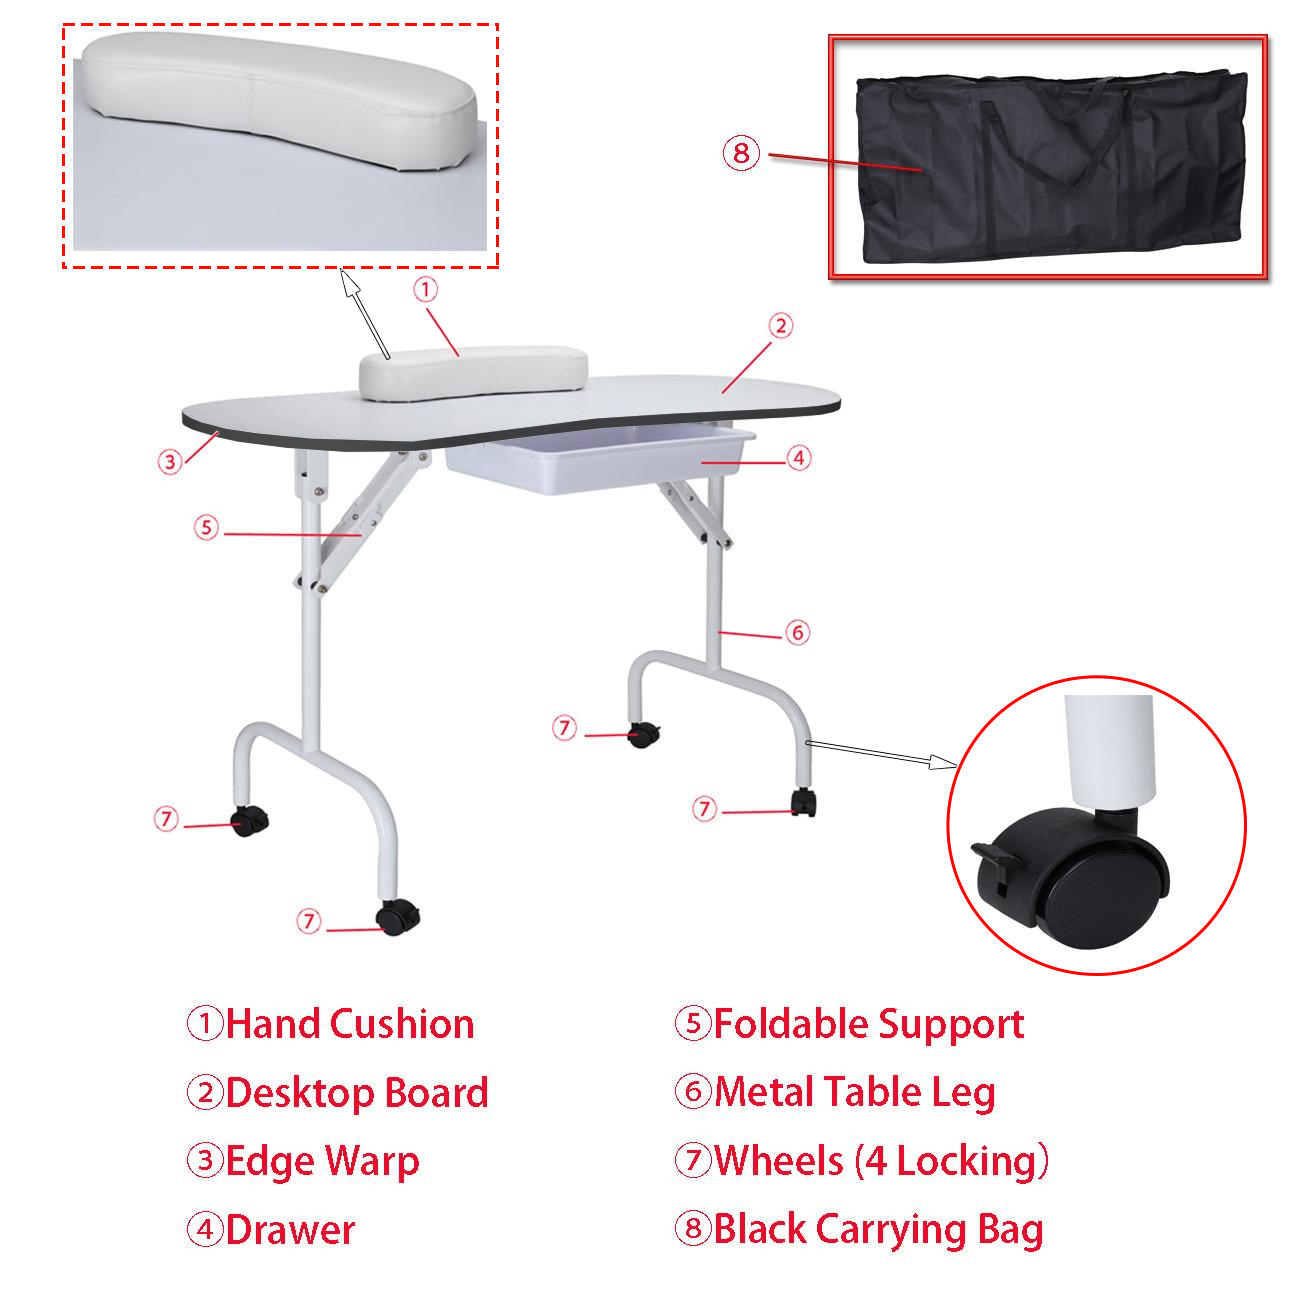 Portable Manicure Table With Carry Bag FOLDABLE PORTABLE MOBILE MANICURE NAIL ART SALON TABLE TECHNICIAN DESK ...